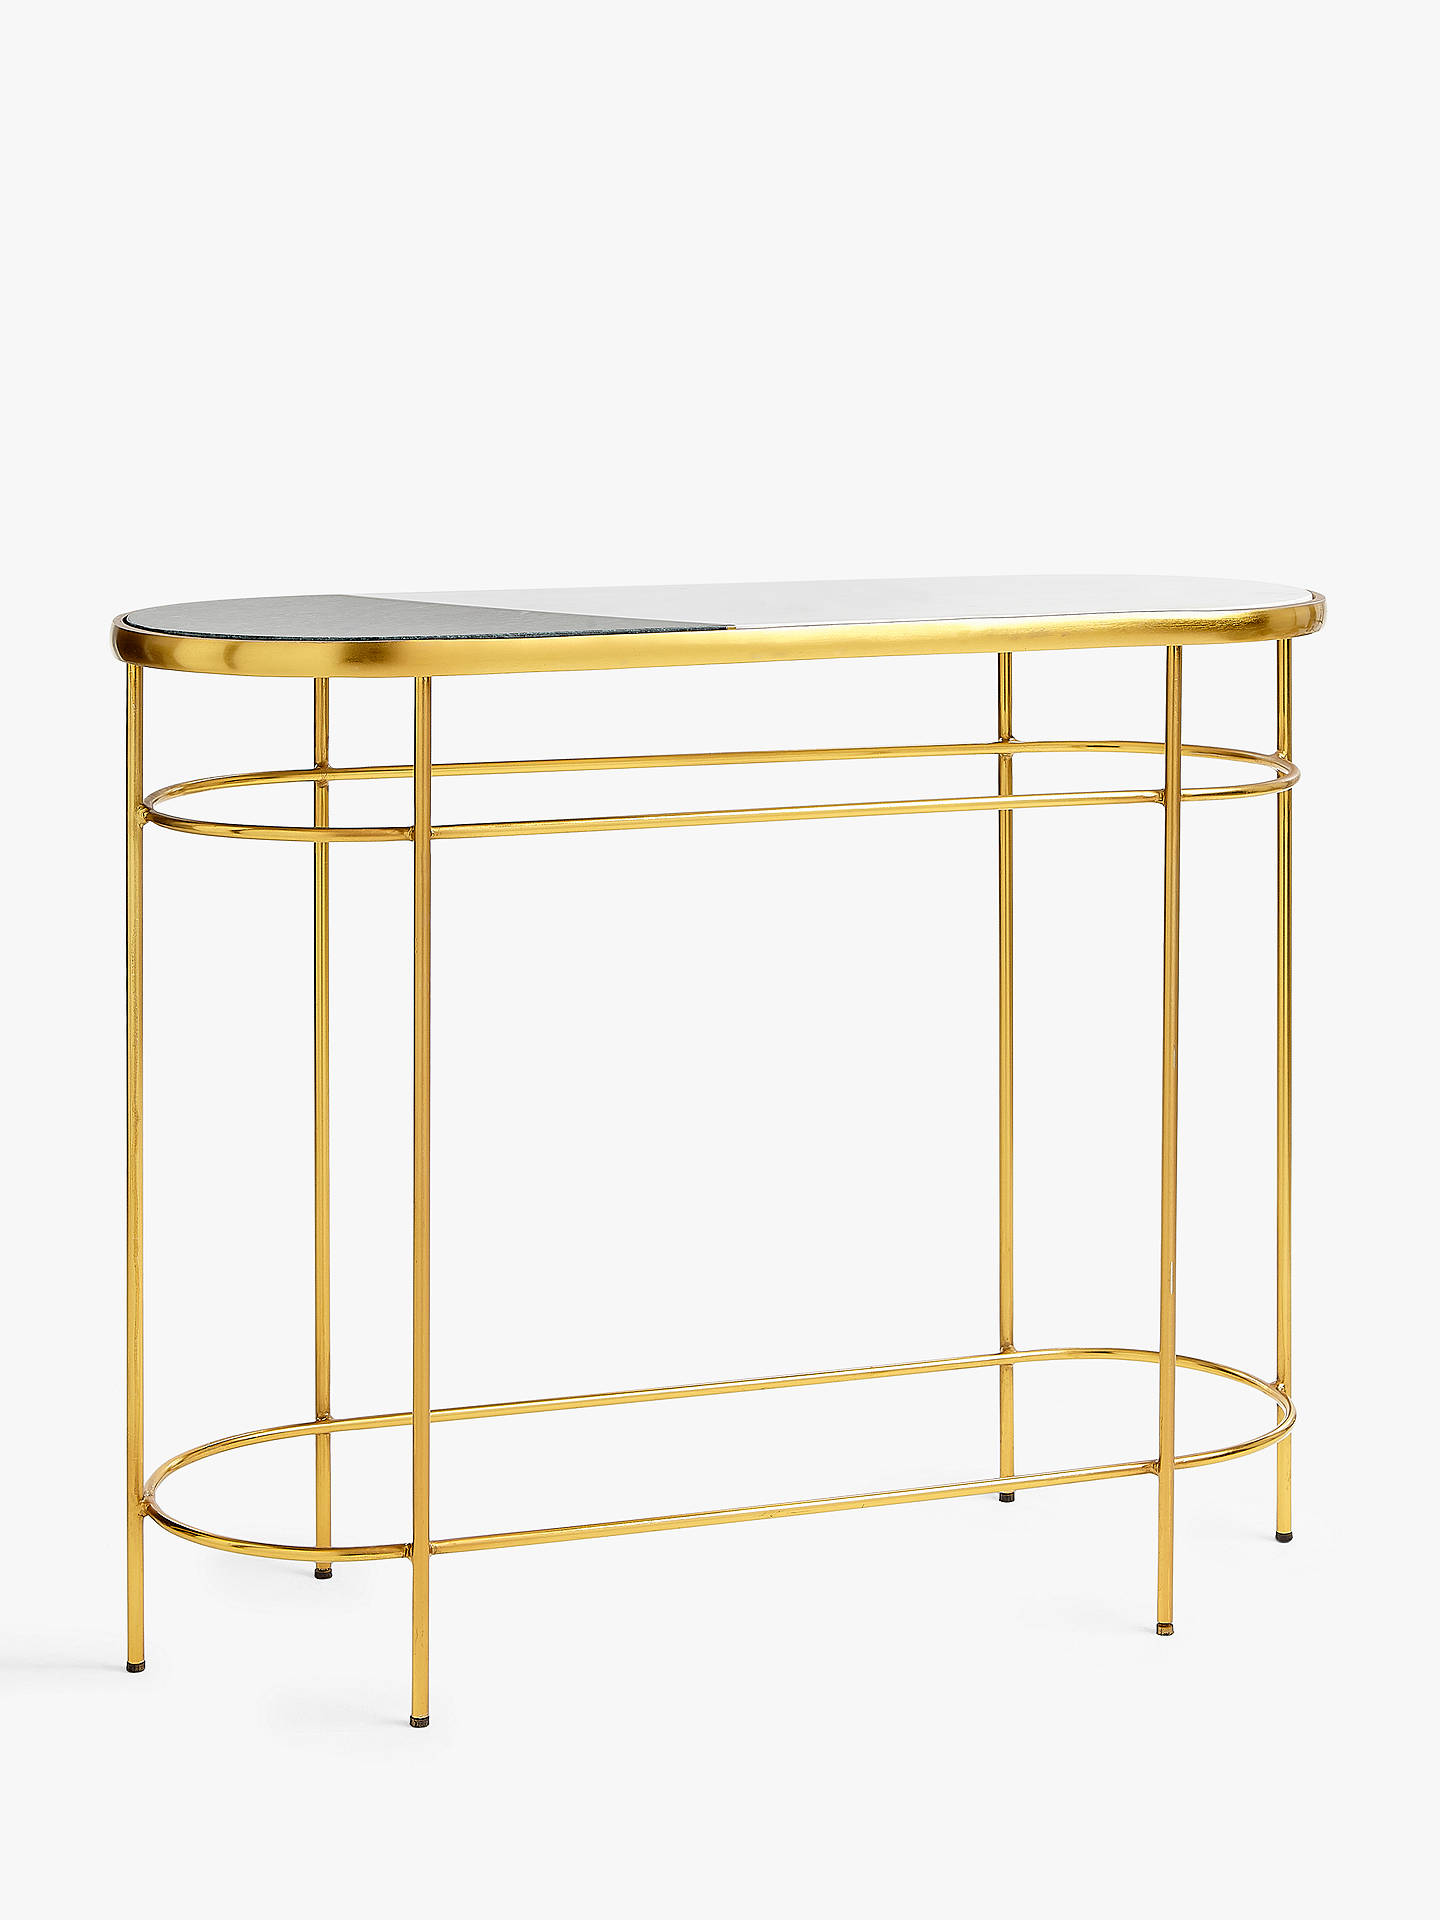 Pleasant John Lewis Partners Swoon Sartre Marble Console Table Gold Green Machost Co Dining Chair Design Ideas Machostcouk